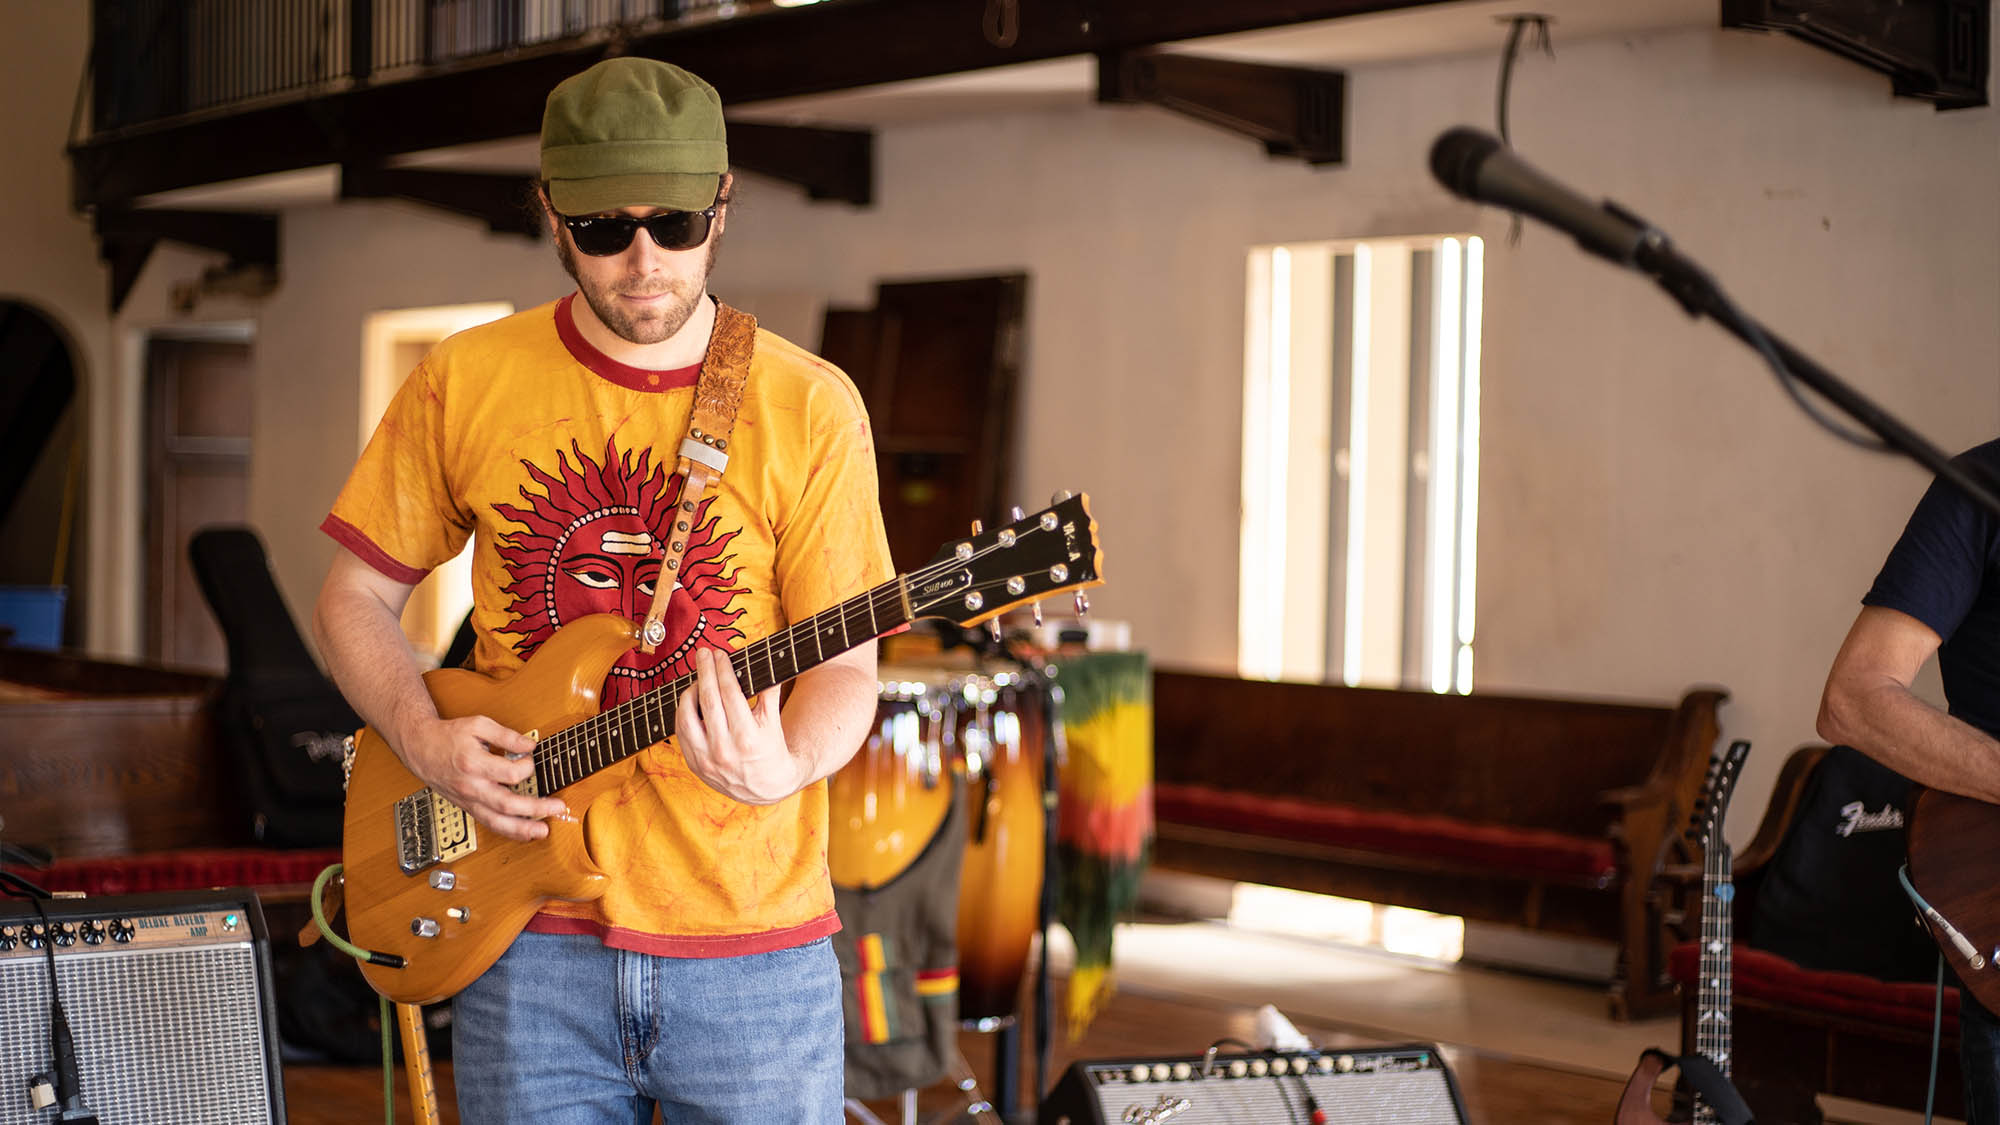 VIDEO: Brian LaPoint & The Joints Perform at Lark Hall in Albany, NY | Window Sessions #3